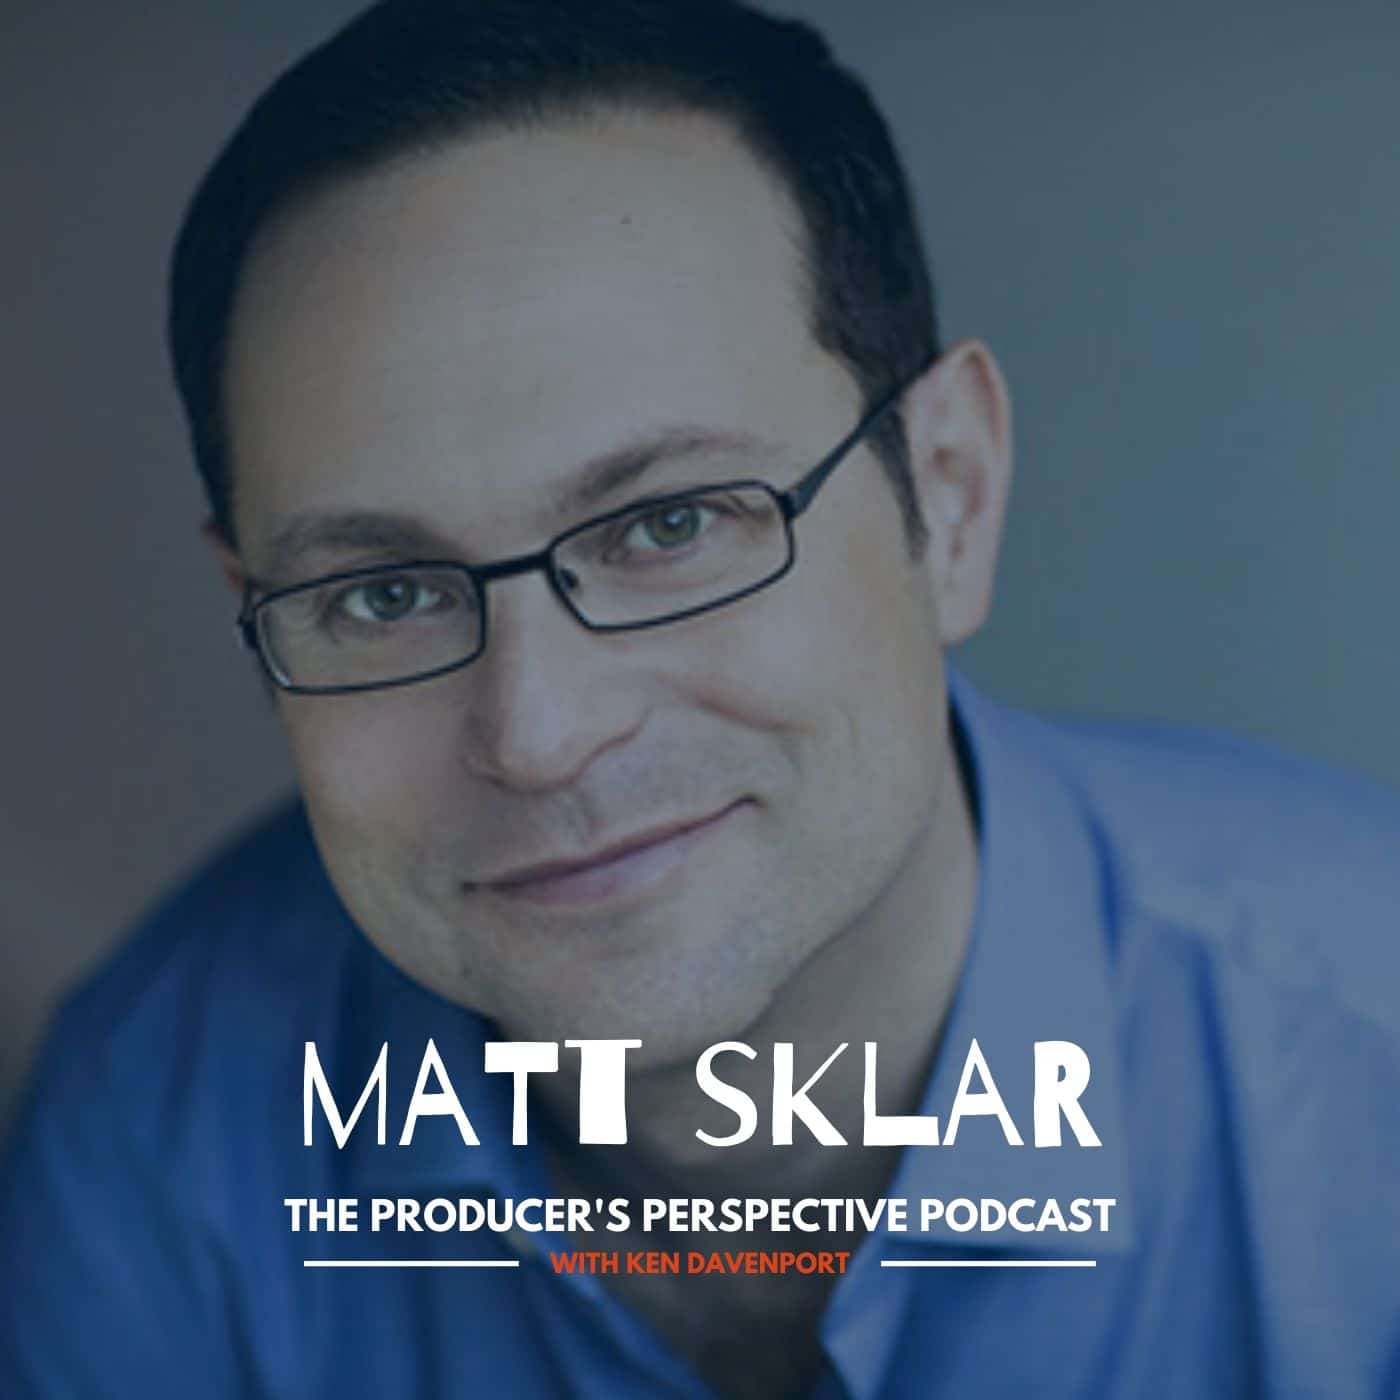 Ken Davenport's The Producer's Perspective Podcast Episode 112 - Matt Sklar